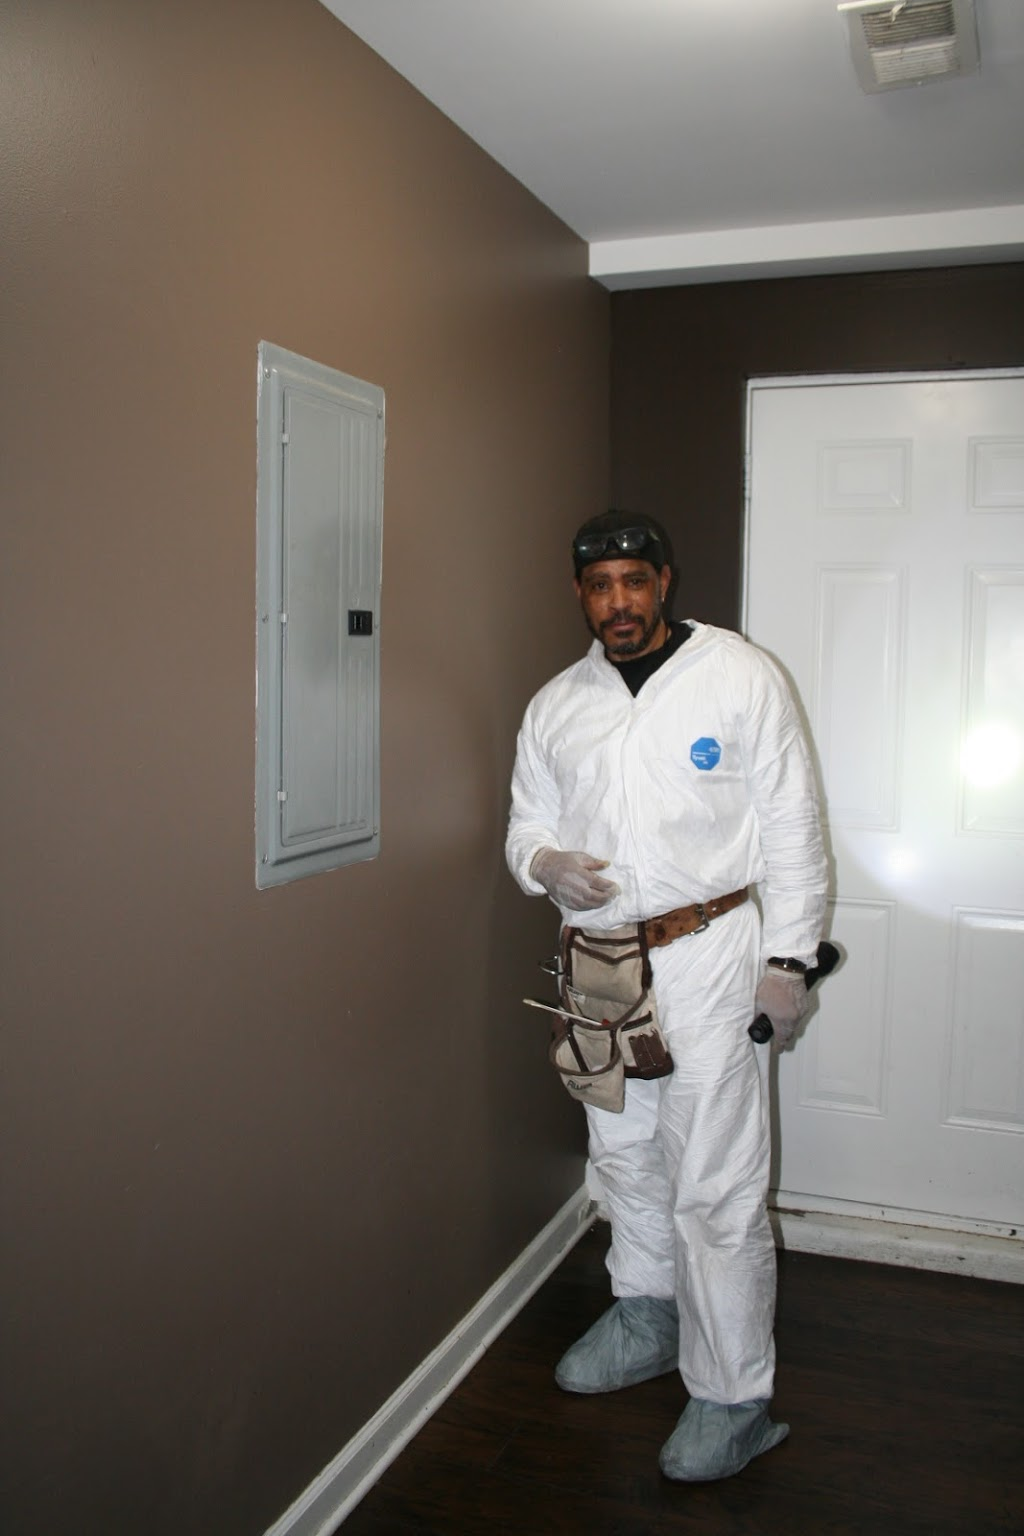 APPLIED ETHICS HOME INSPECTION, LLC - point of interest  | Photo 7 of 10 | Address: 4615 W Adams St, Chicago, IL 60644, USA | Phone: (312) 437-5557